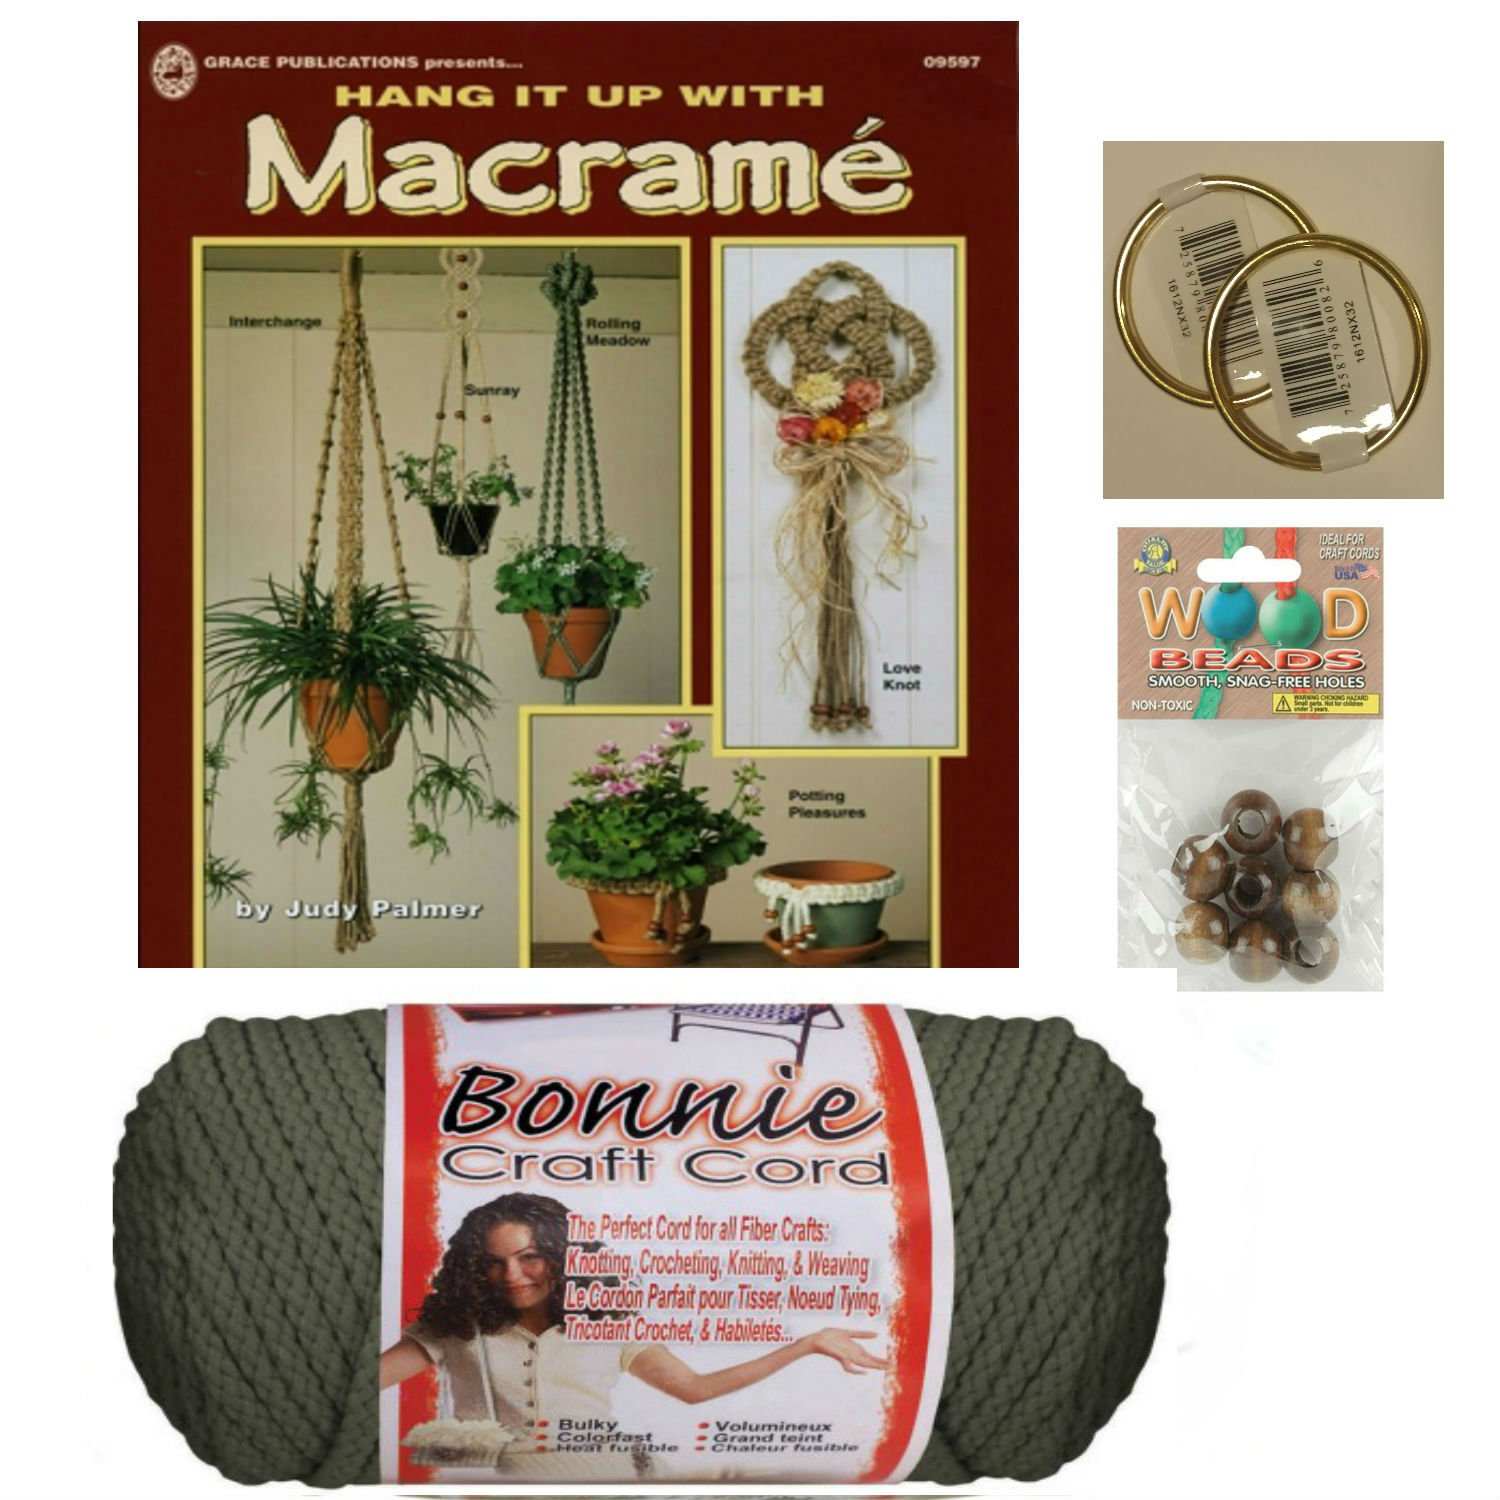 Macrame kit Bundle with Craft Cord, Wooden Beads, Rings, and Project Book for Plant Hangers and Wall hangings (Navy) Gideons Goods